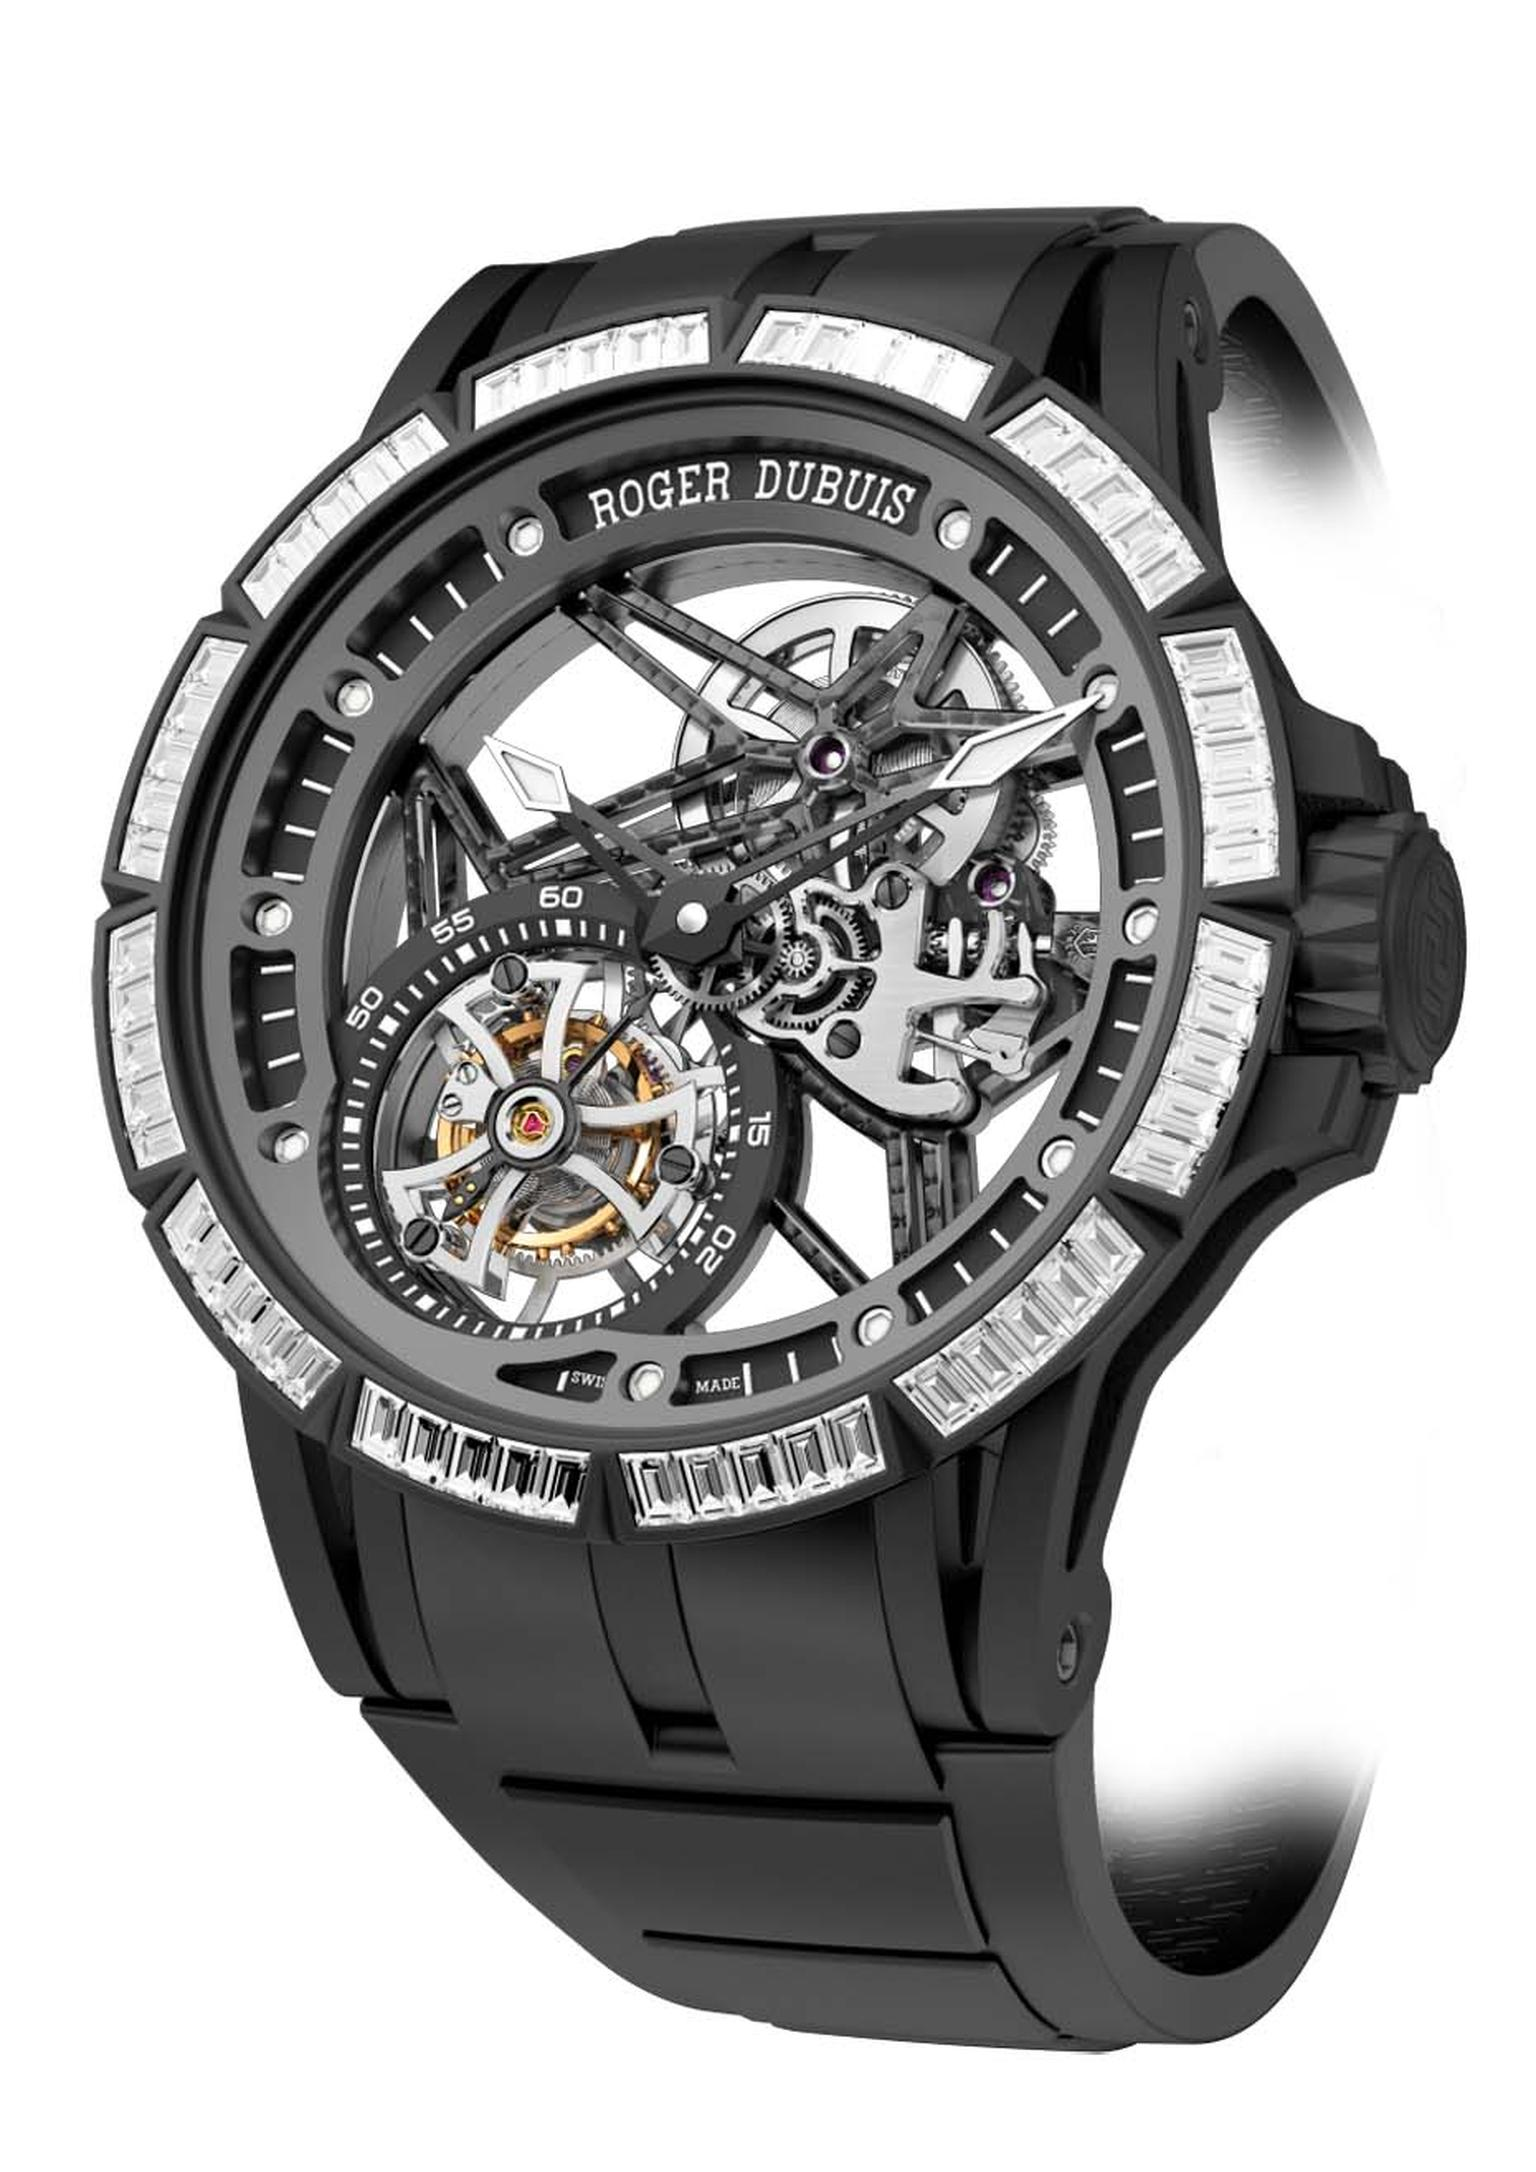 Roger Dubuis Excalibur Spider Skeleton Tourbillon is the first skeleton watch to boast a diamond-set bezel in rubber, a technique that took the brand two years to develop.